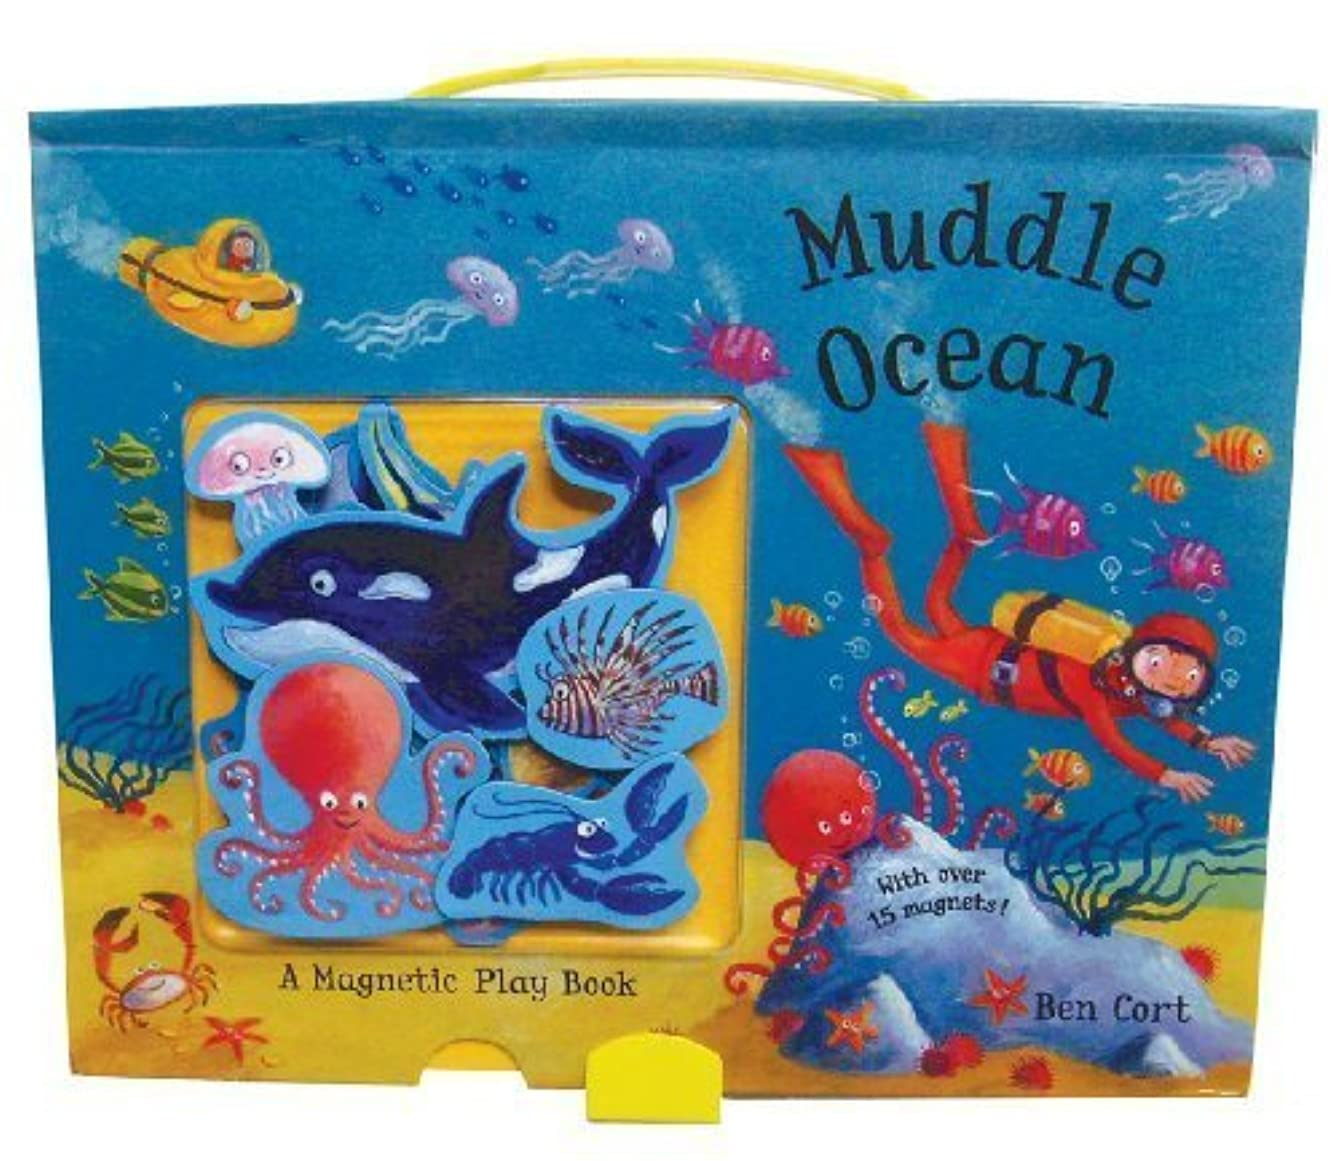 Muddle Ocean: A Magnetic Play Book (Muddle Books) by Ben Cort (2010-02-01)